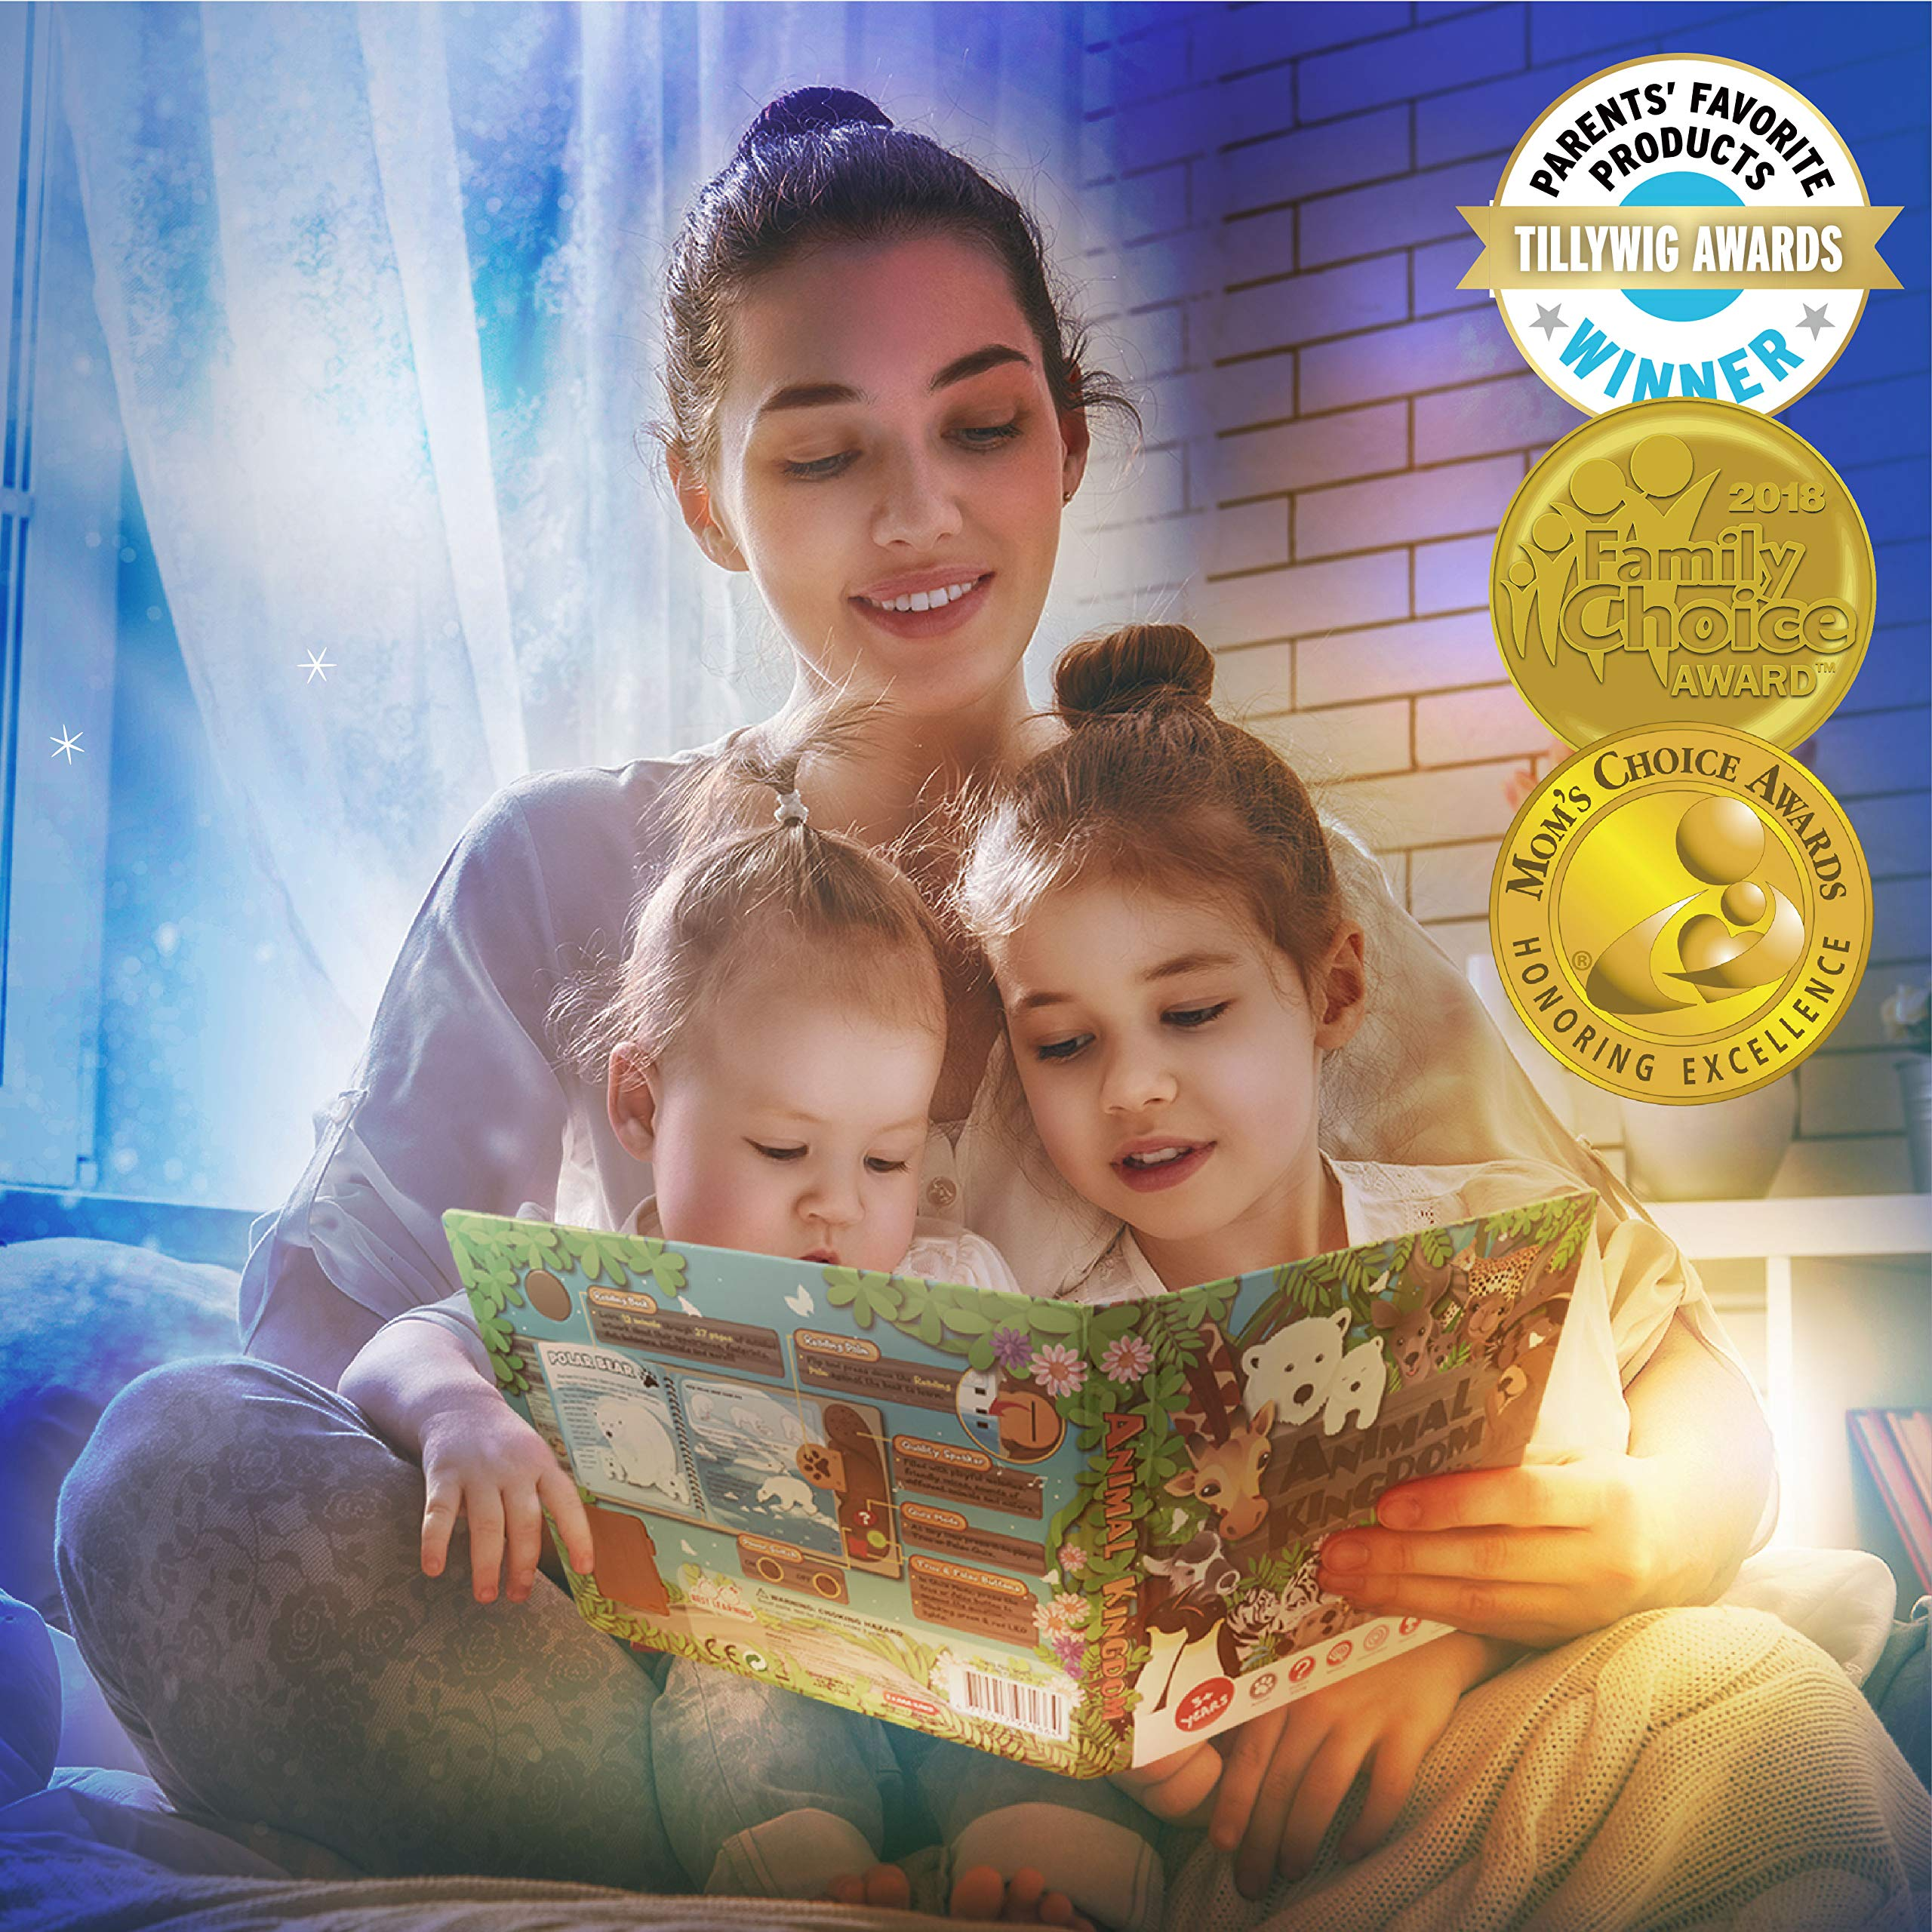 BEST LEARNING Book Reader Animal Kingdom - Educational Talking Sound Toy to Learn About Animals with Quiz Games for Kids Ages 3 to 8 Years Old by BEST LEARNING (Image #2)